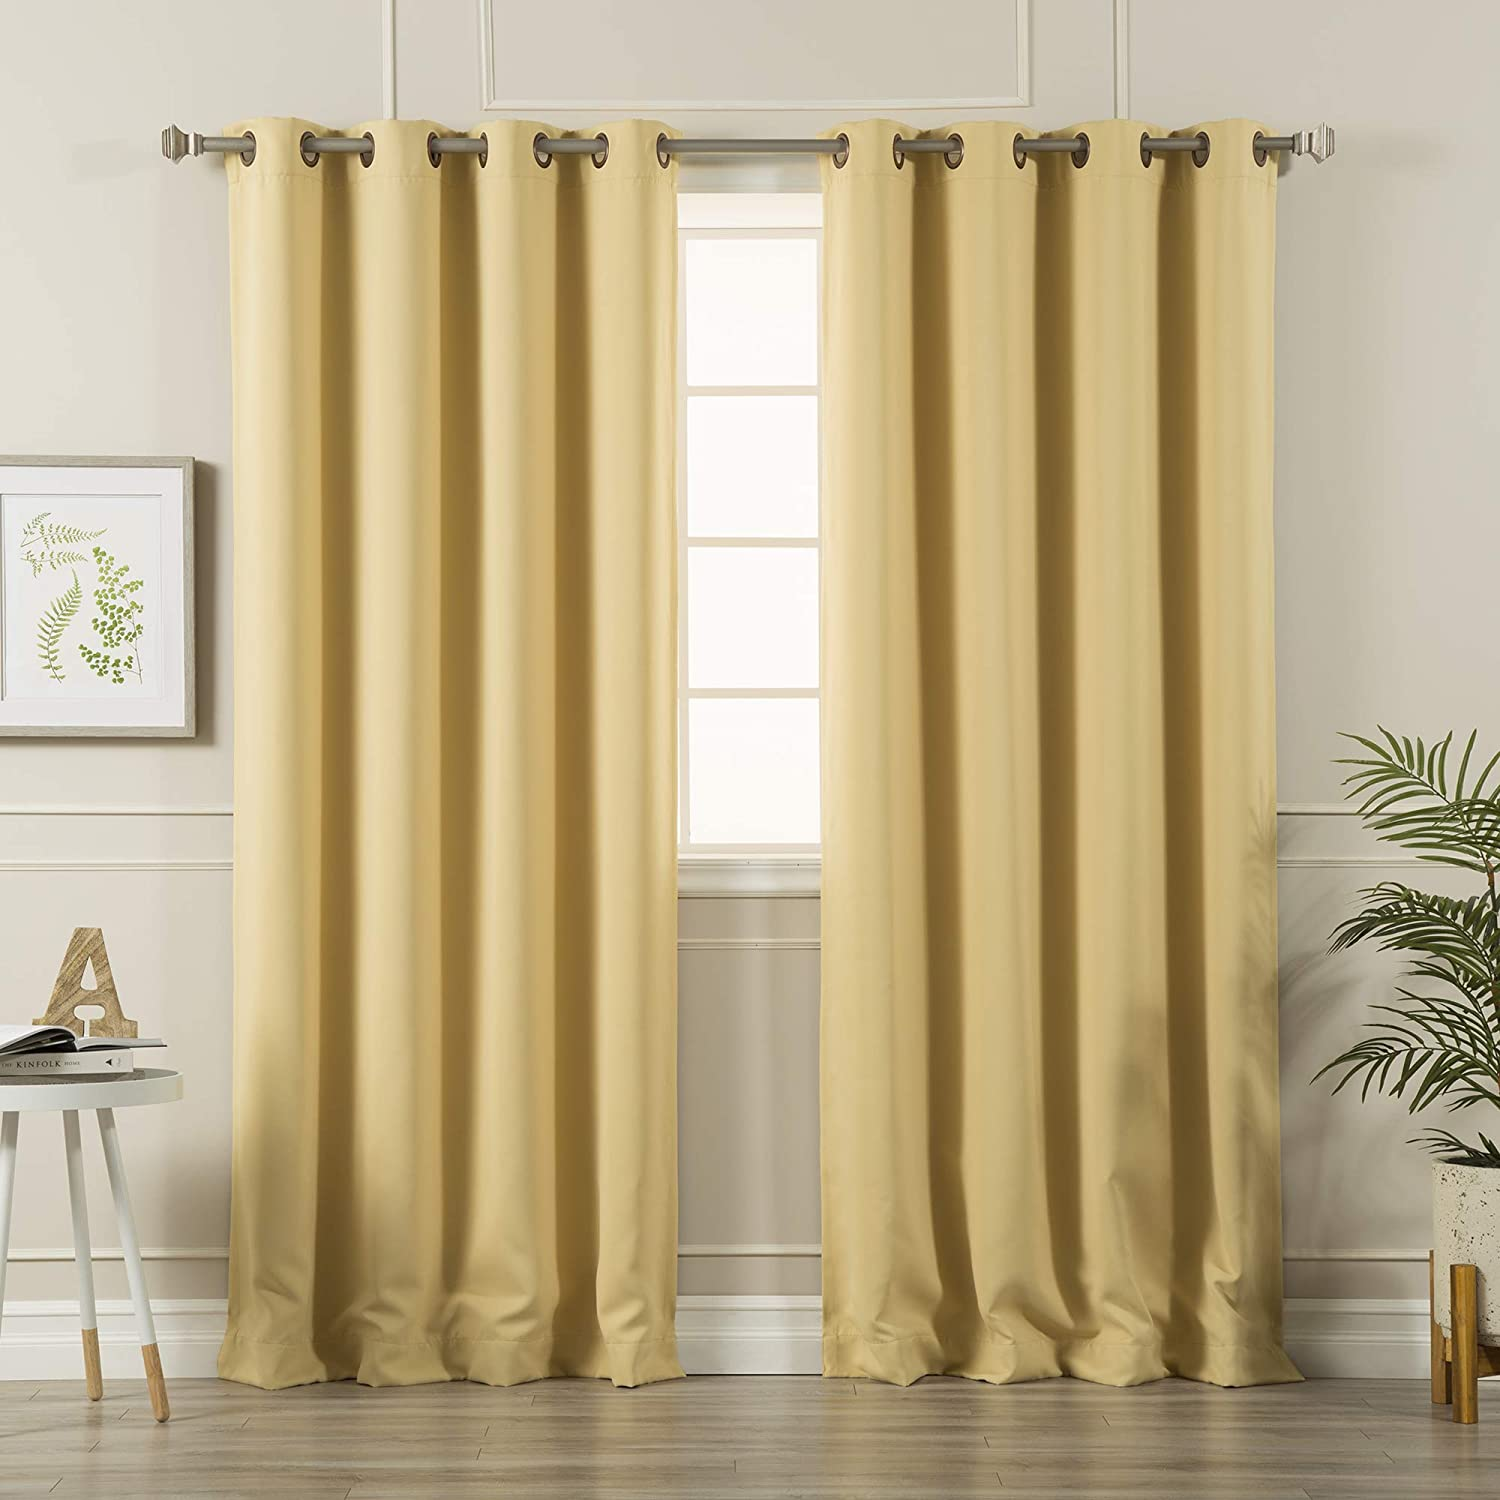 "Best Home Fashion Blackout Curtain Panels - Premium Thermal Insulated Window Treatment Blackout Drapes for Bedroom - Antique Bronze Grommet Top – Sunlight - 52"" W x 96"" L - (Set of 2 Panels)"